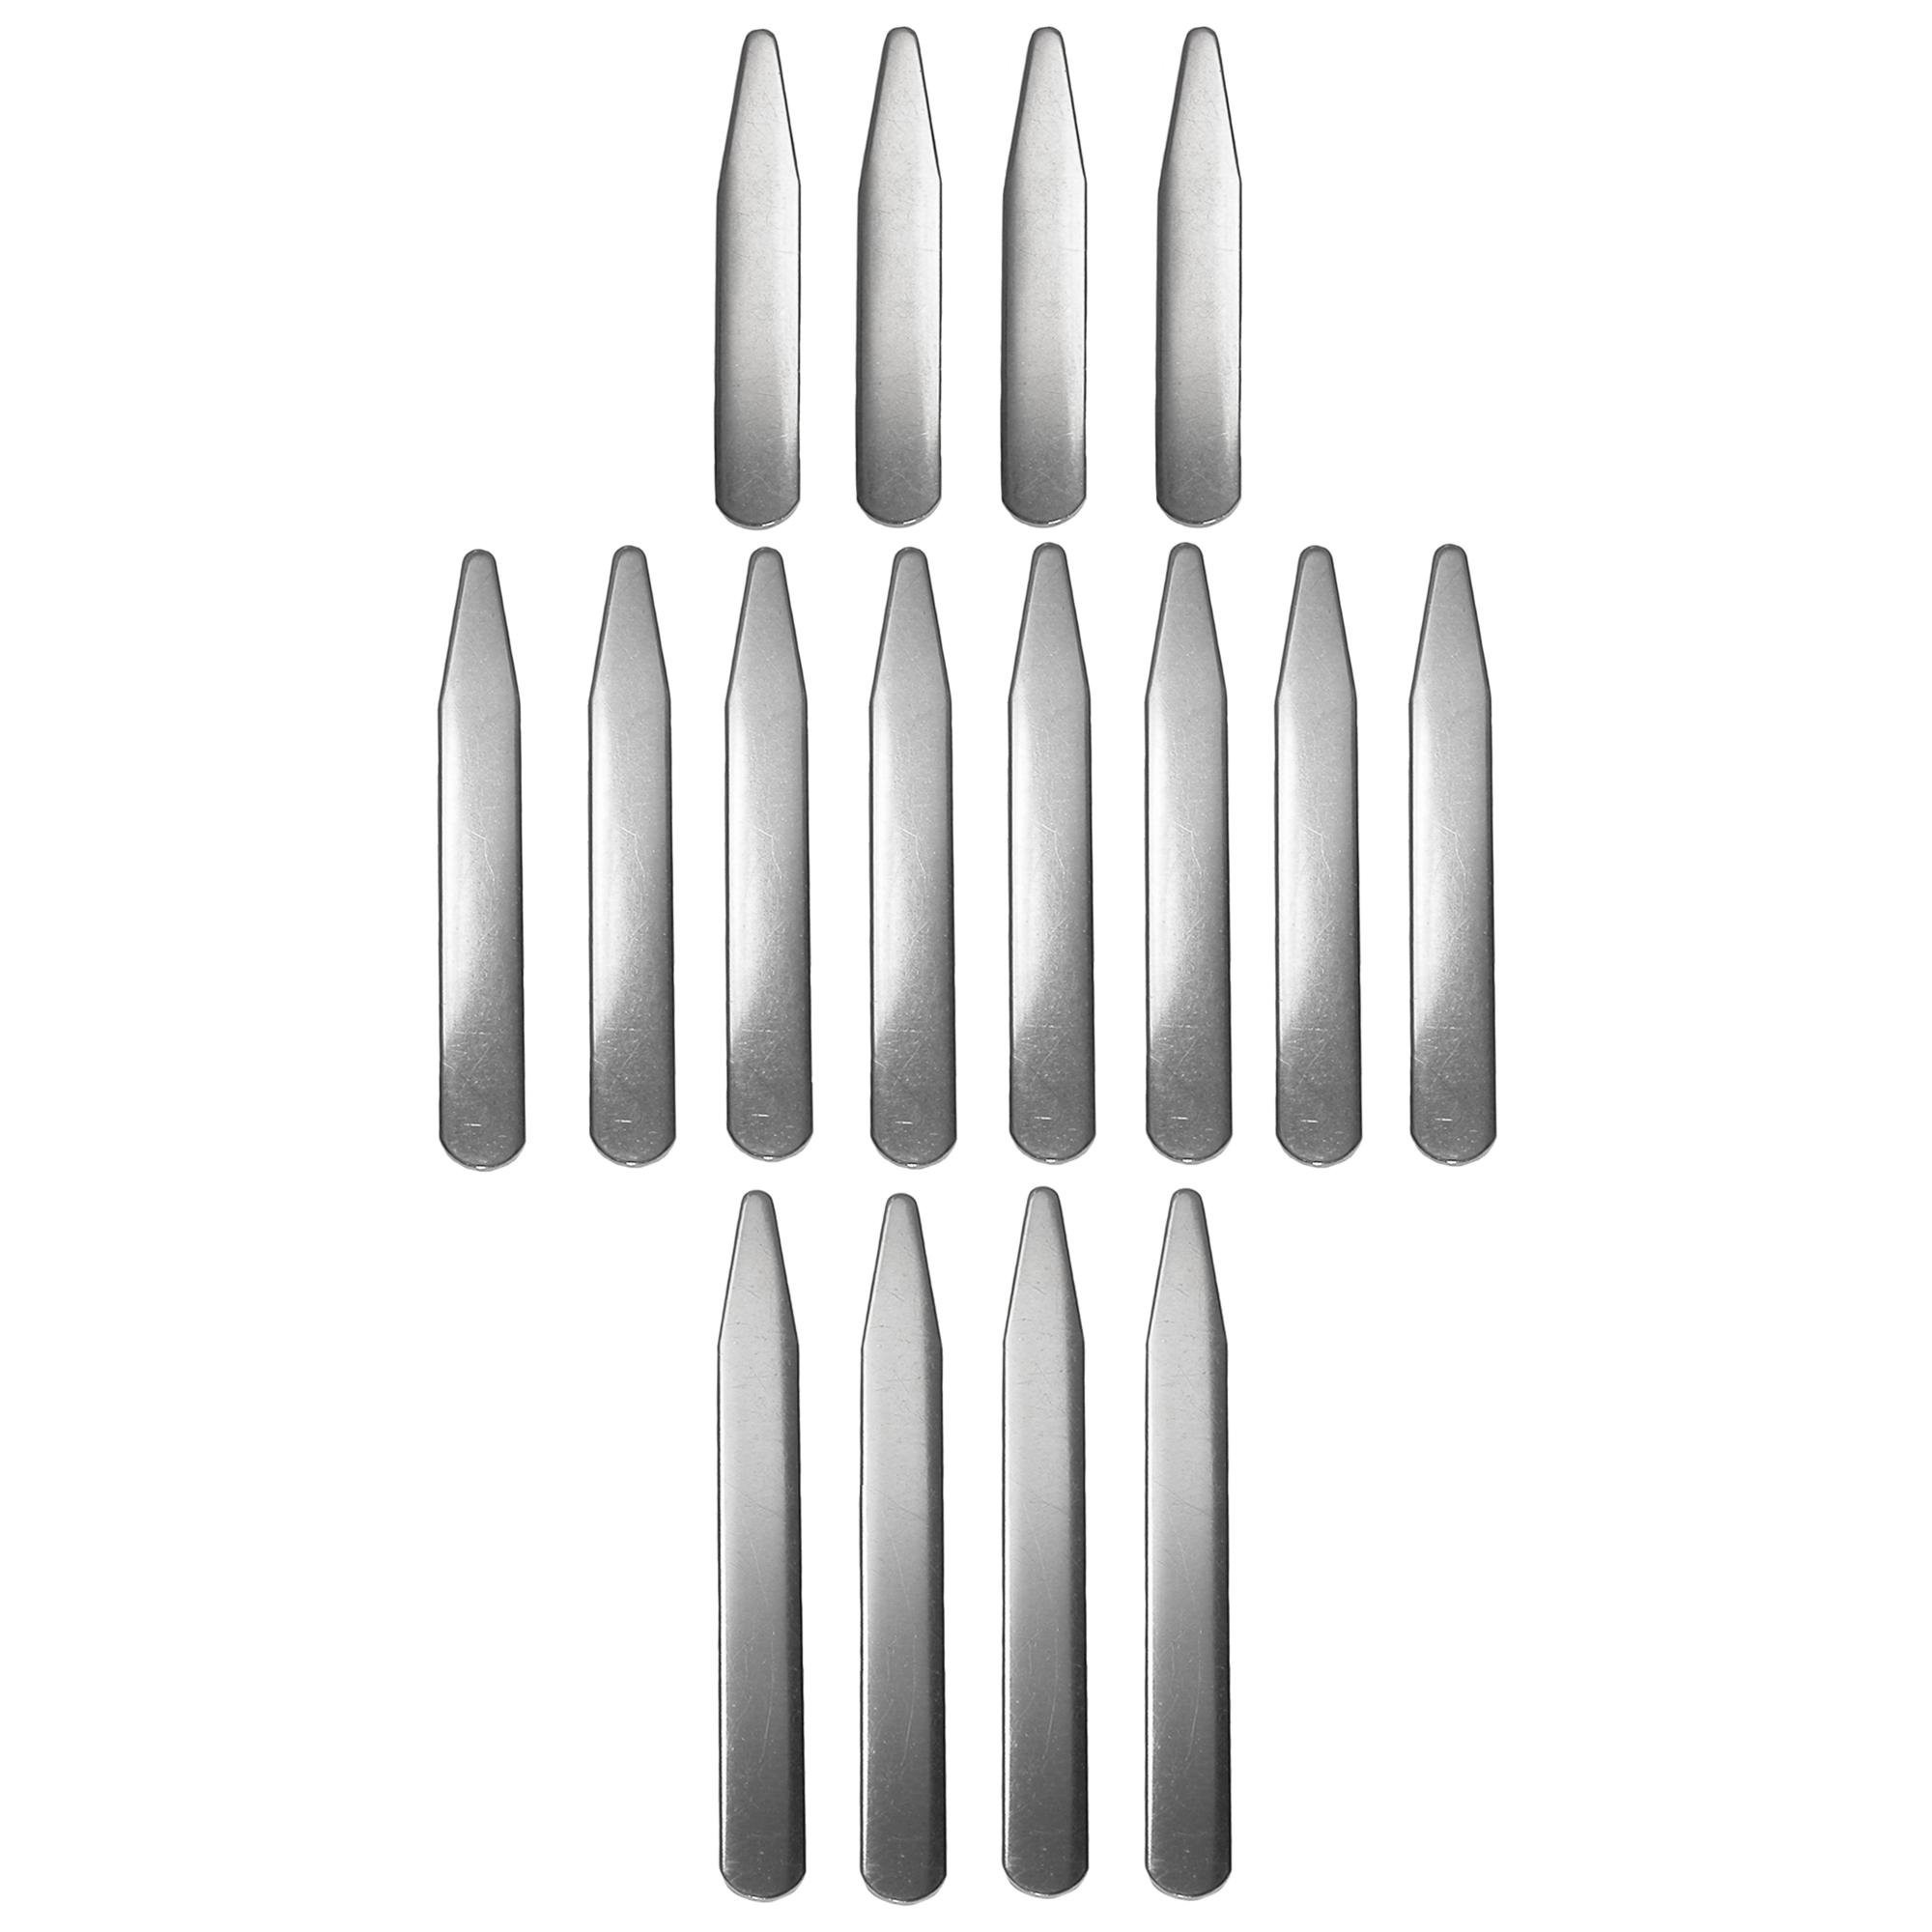 CrookhornDavis Men's Stainless Steel Collar Stays in 3 Lengths (Pack of 16 Sets)